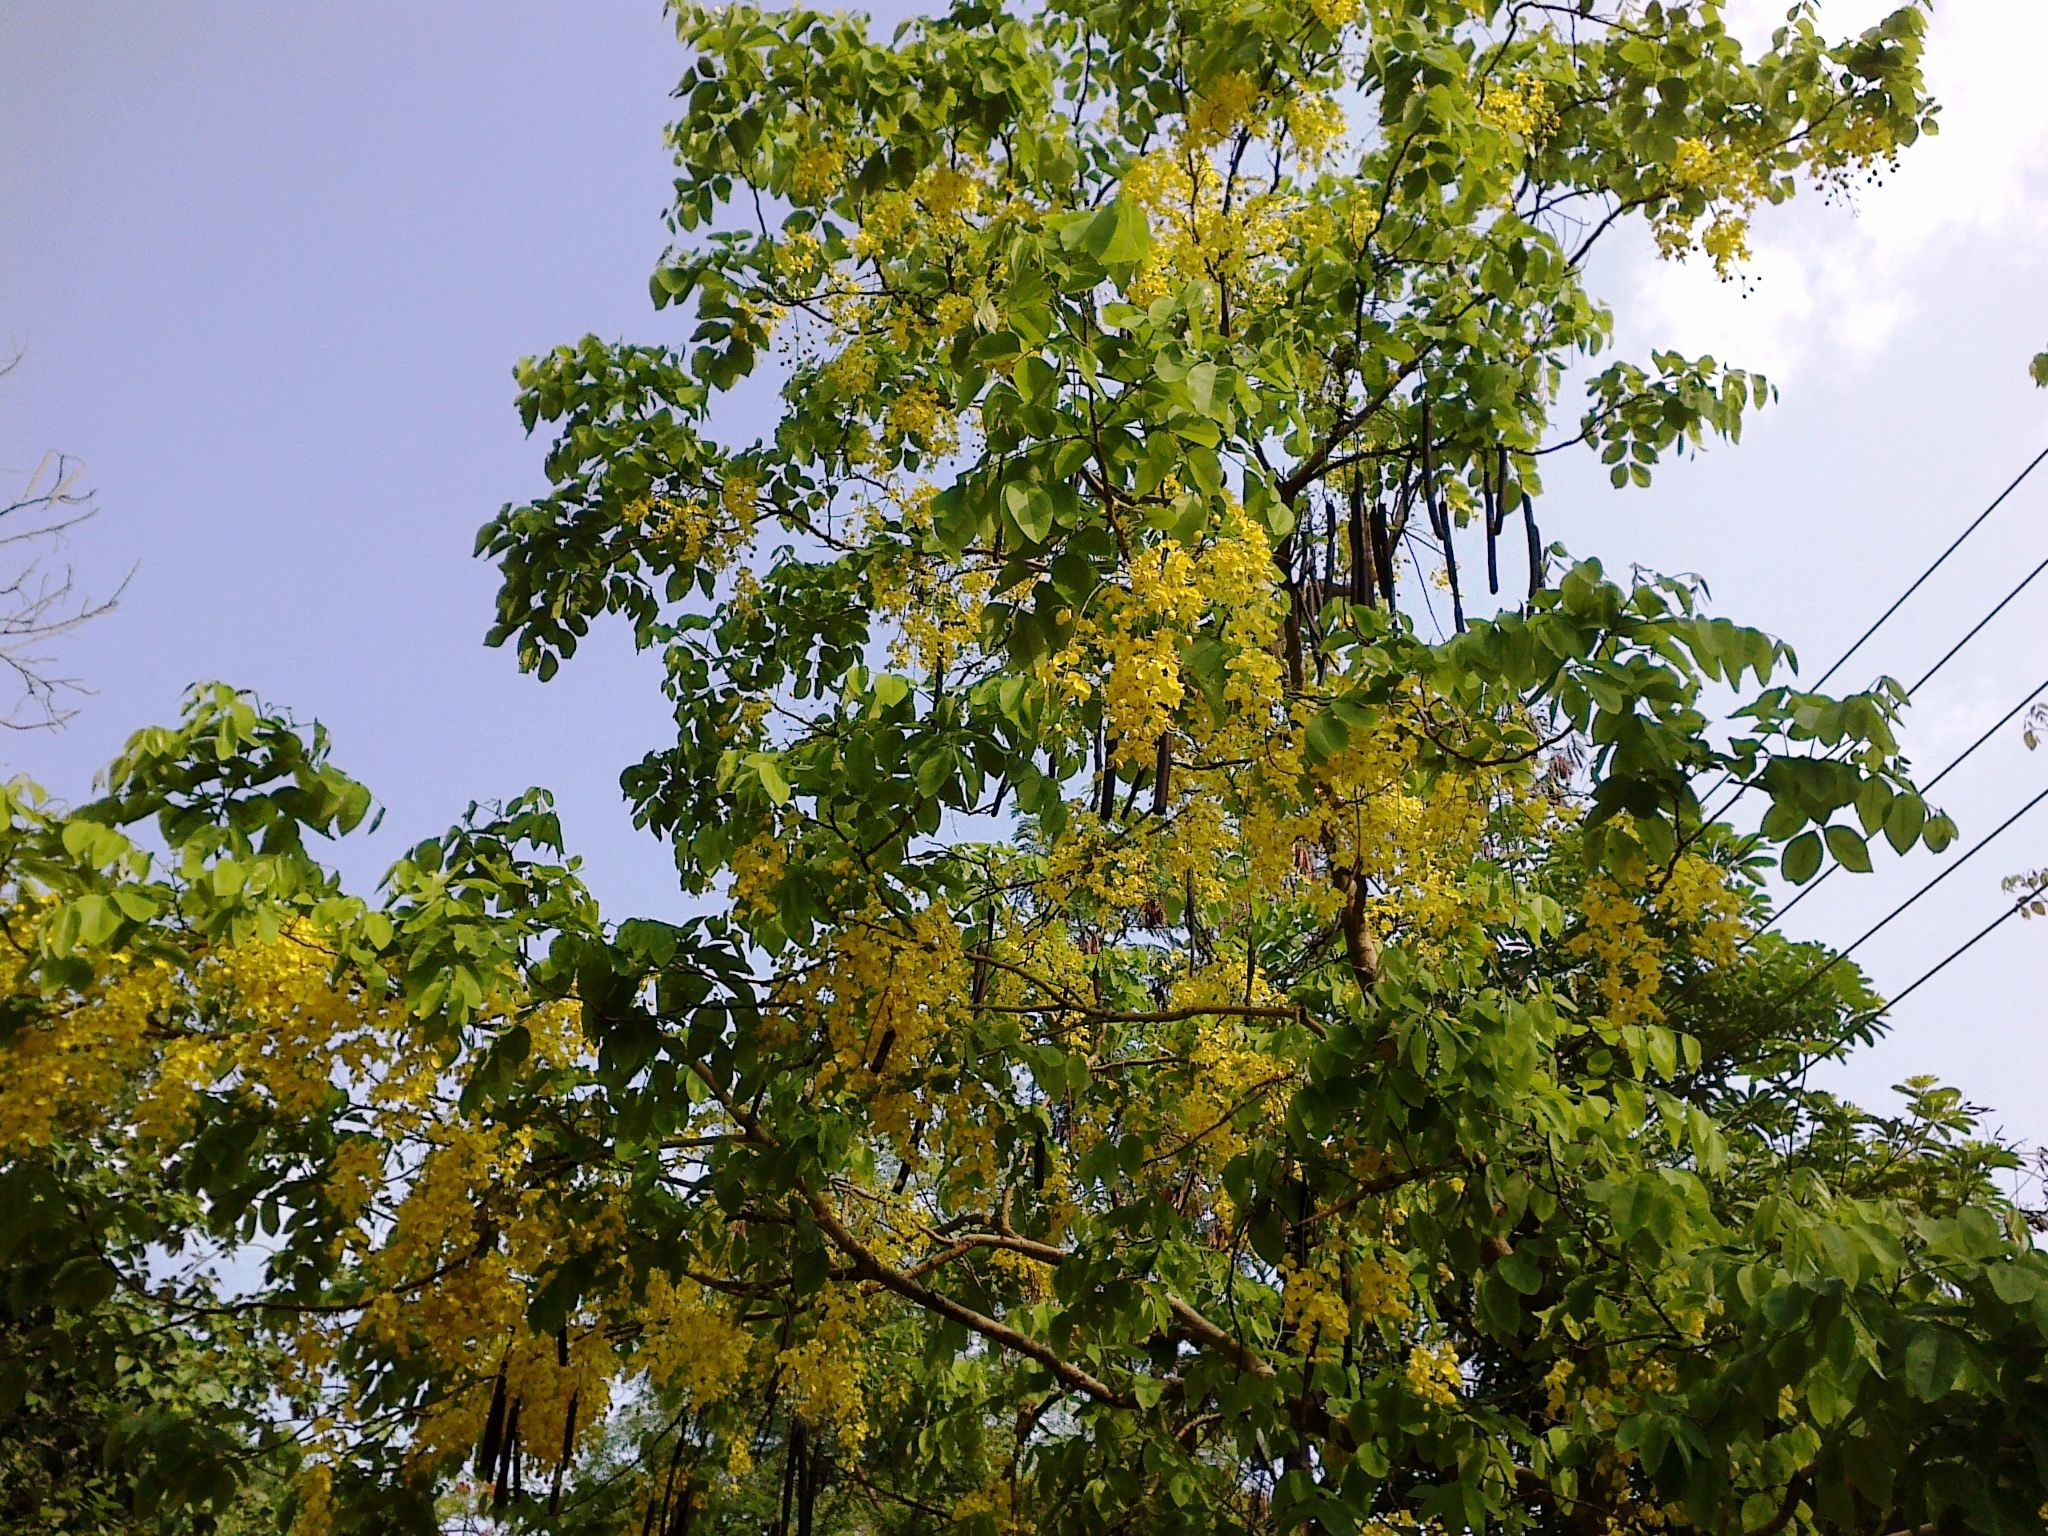 Indian Laburnum In Full Bloom With The Dark Seed Pods Hanging In Abundance Seed Pods Seeds Plants